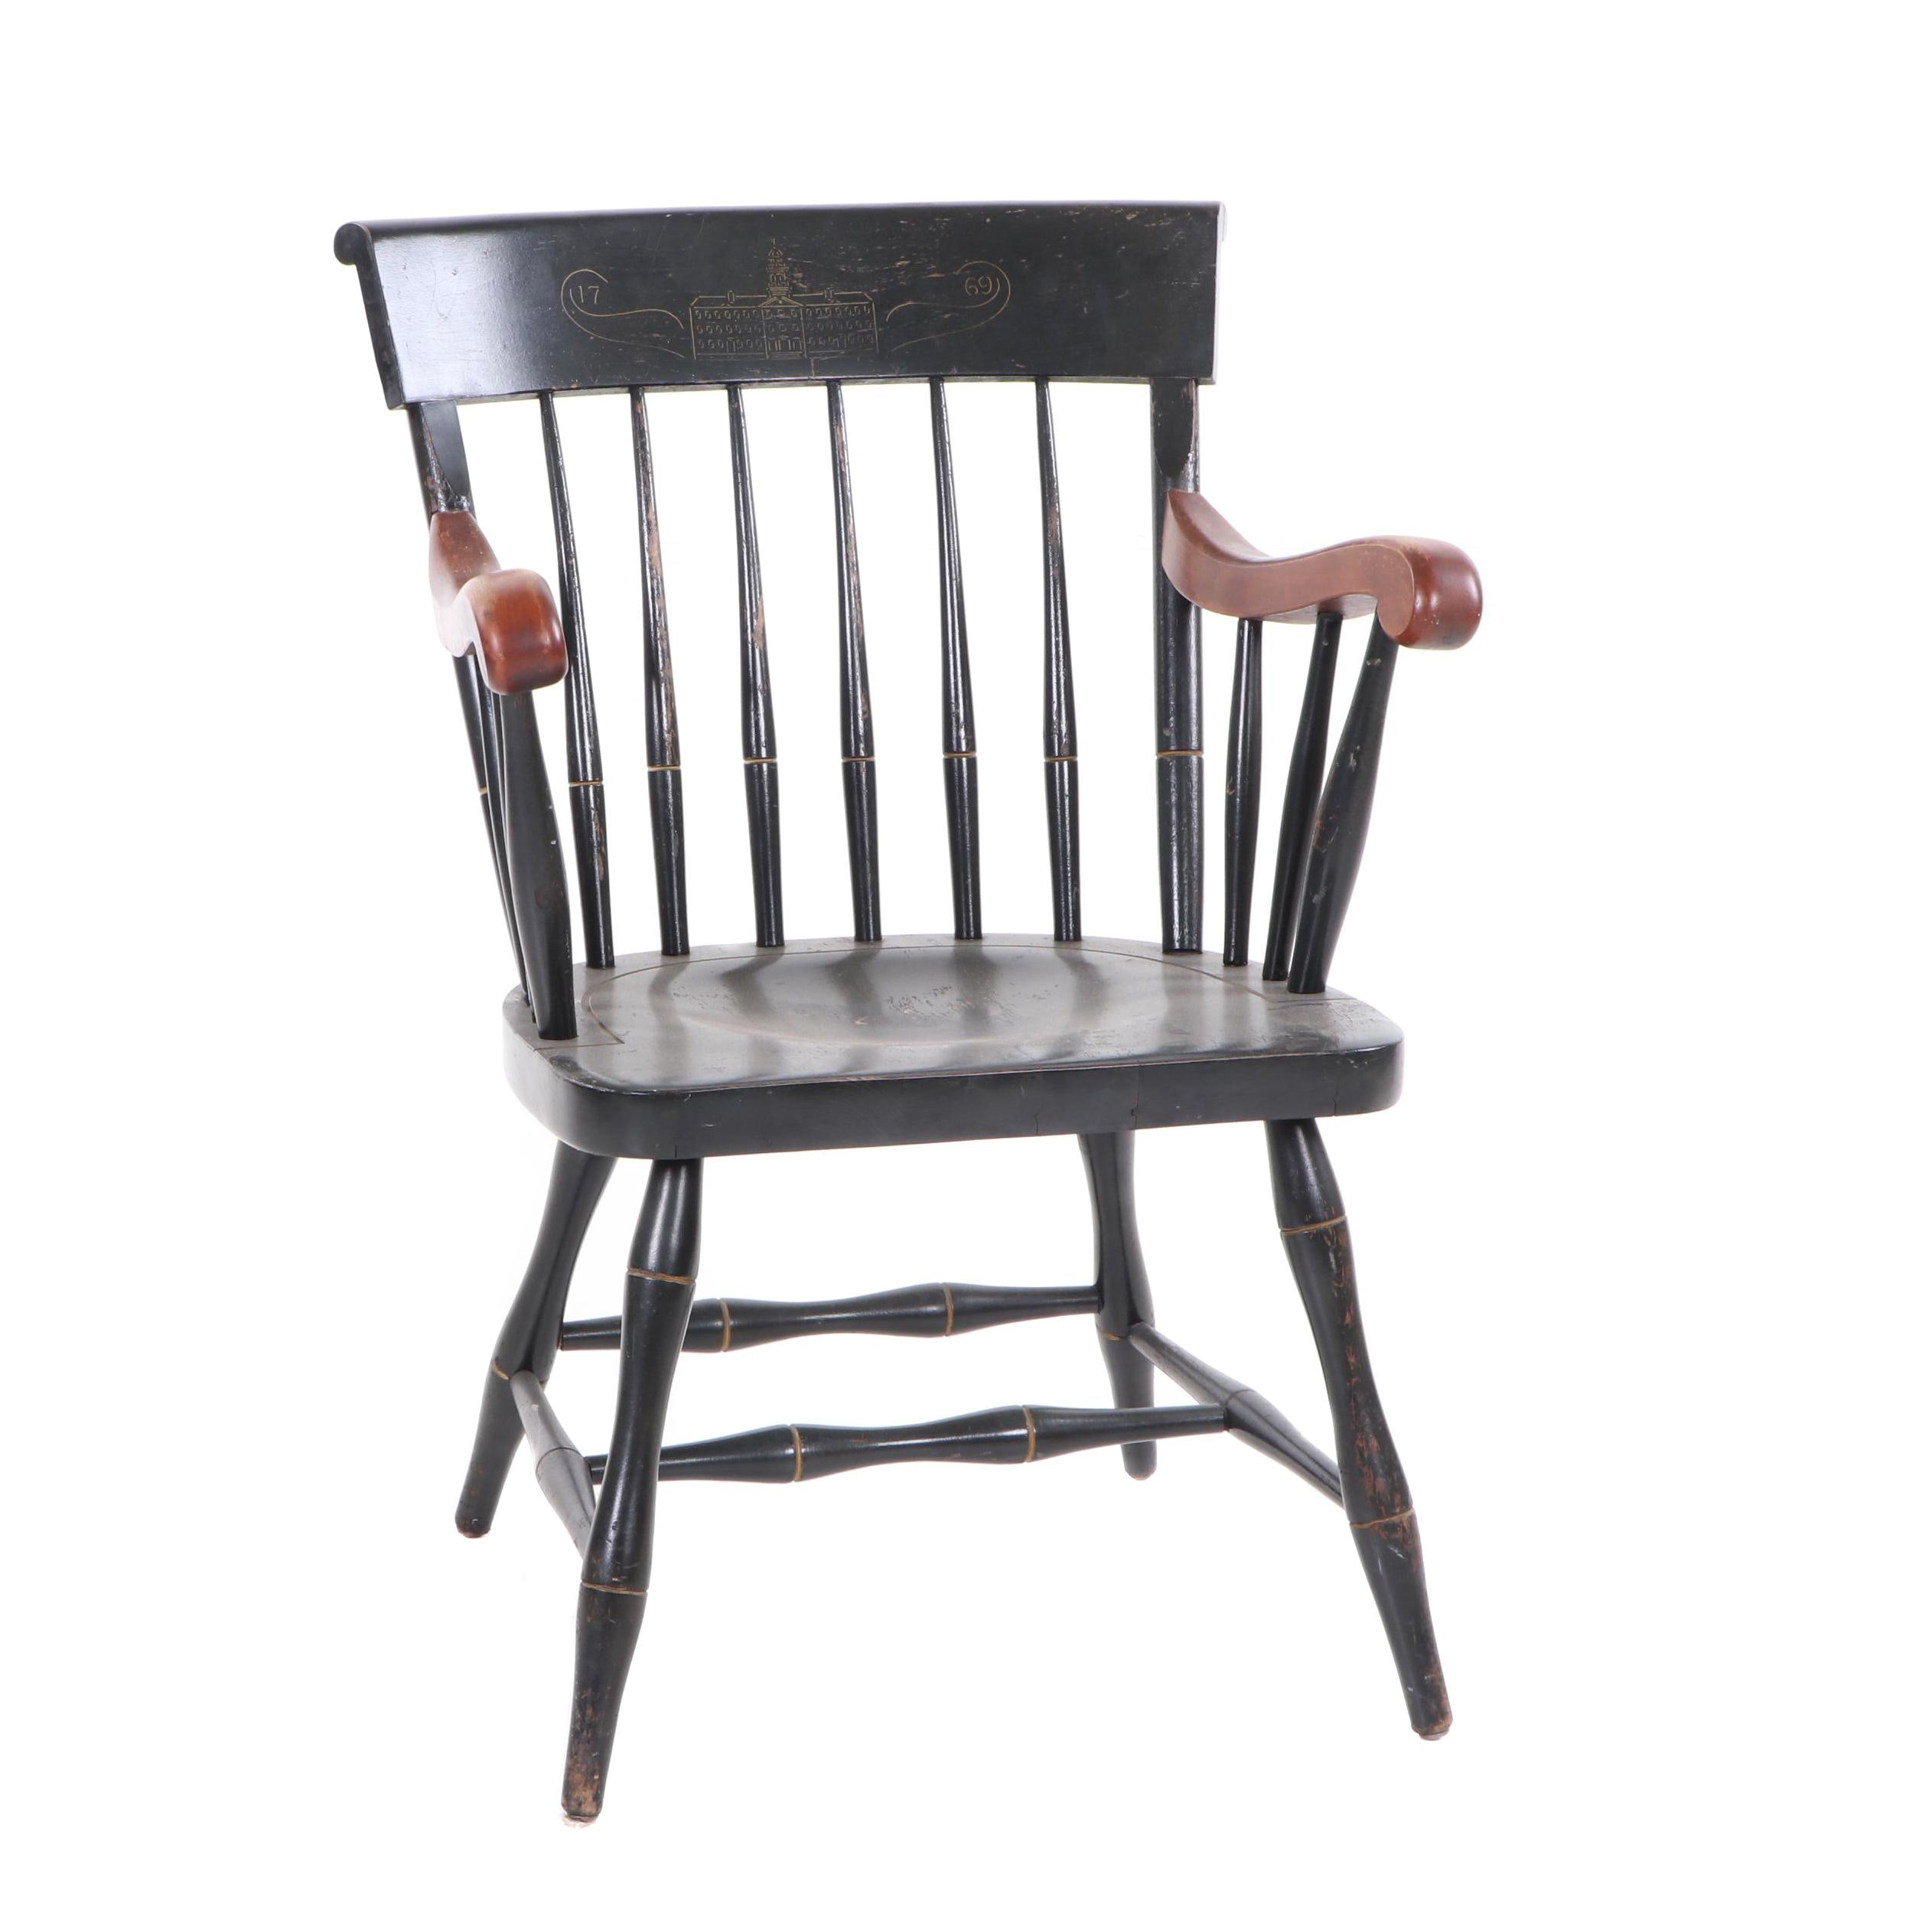 Nichols & Stone Dartmouth Painted Maple Windsor Style Armchair, Mid 20th Century